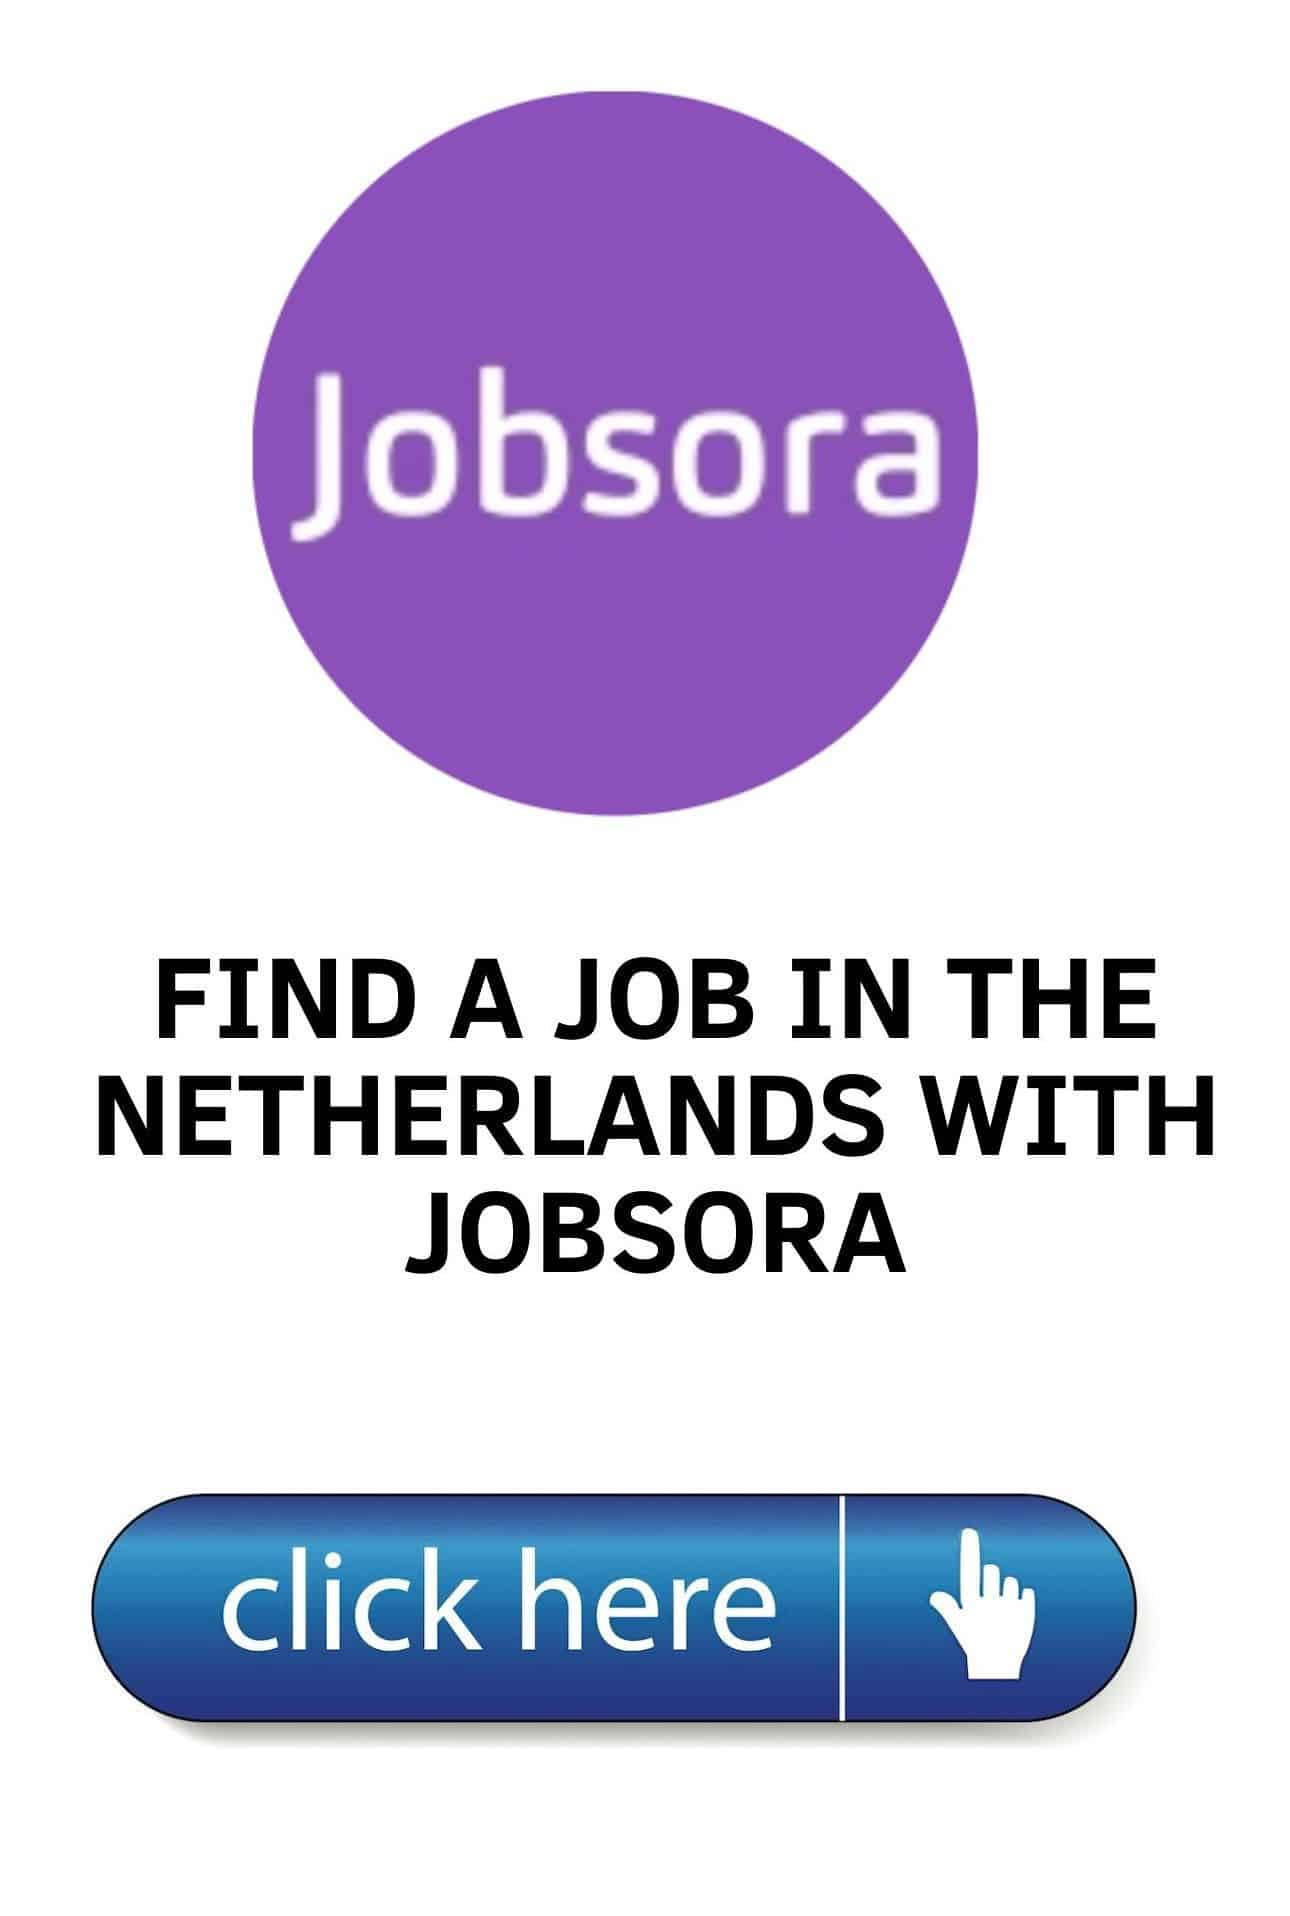 Find a job in the Netherlands with Jobsora